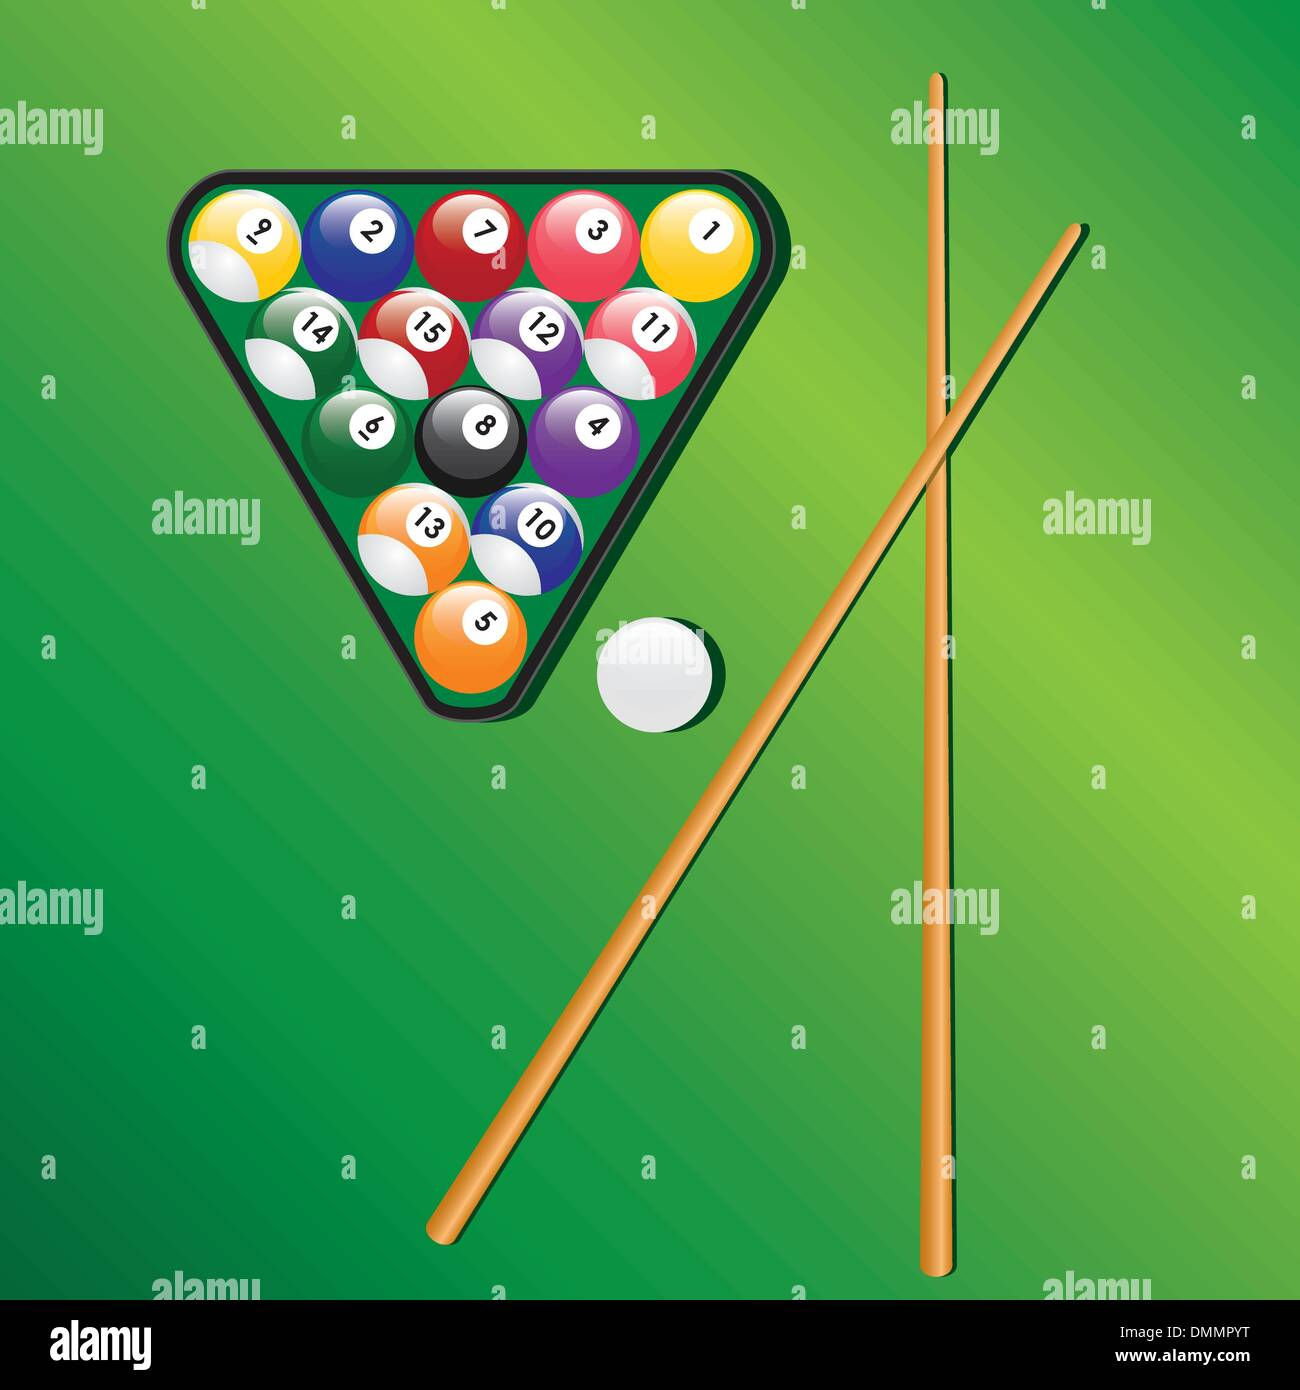 Billiard balls and cues for play game. - Stock Vector